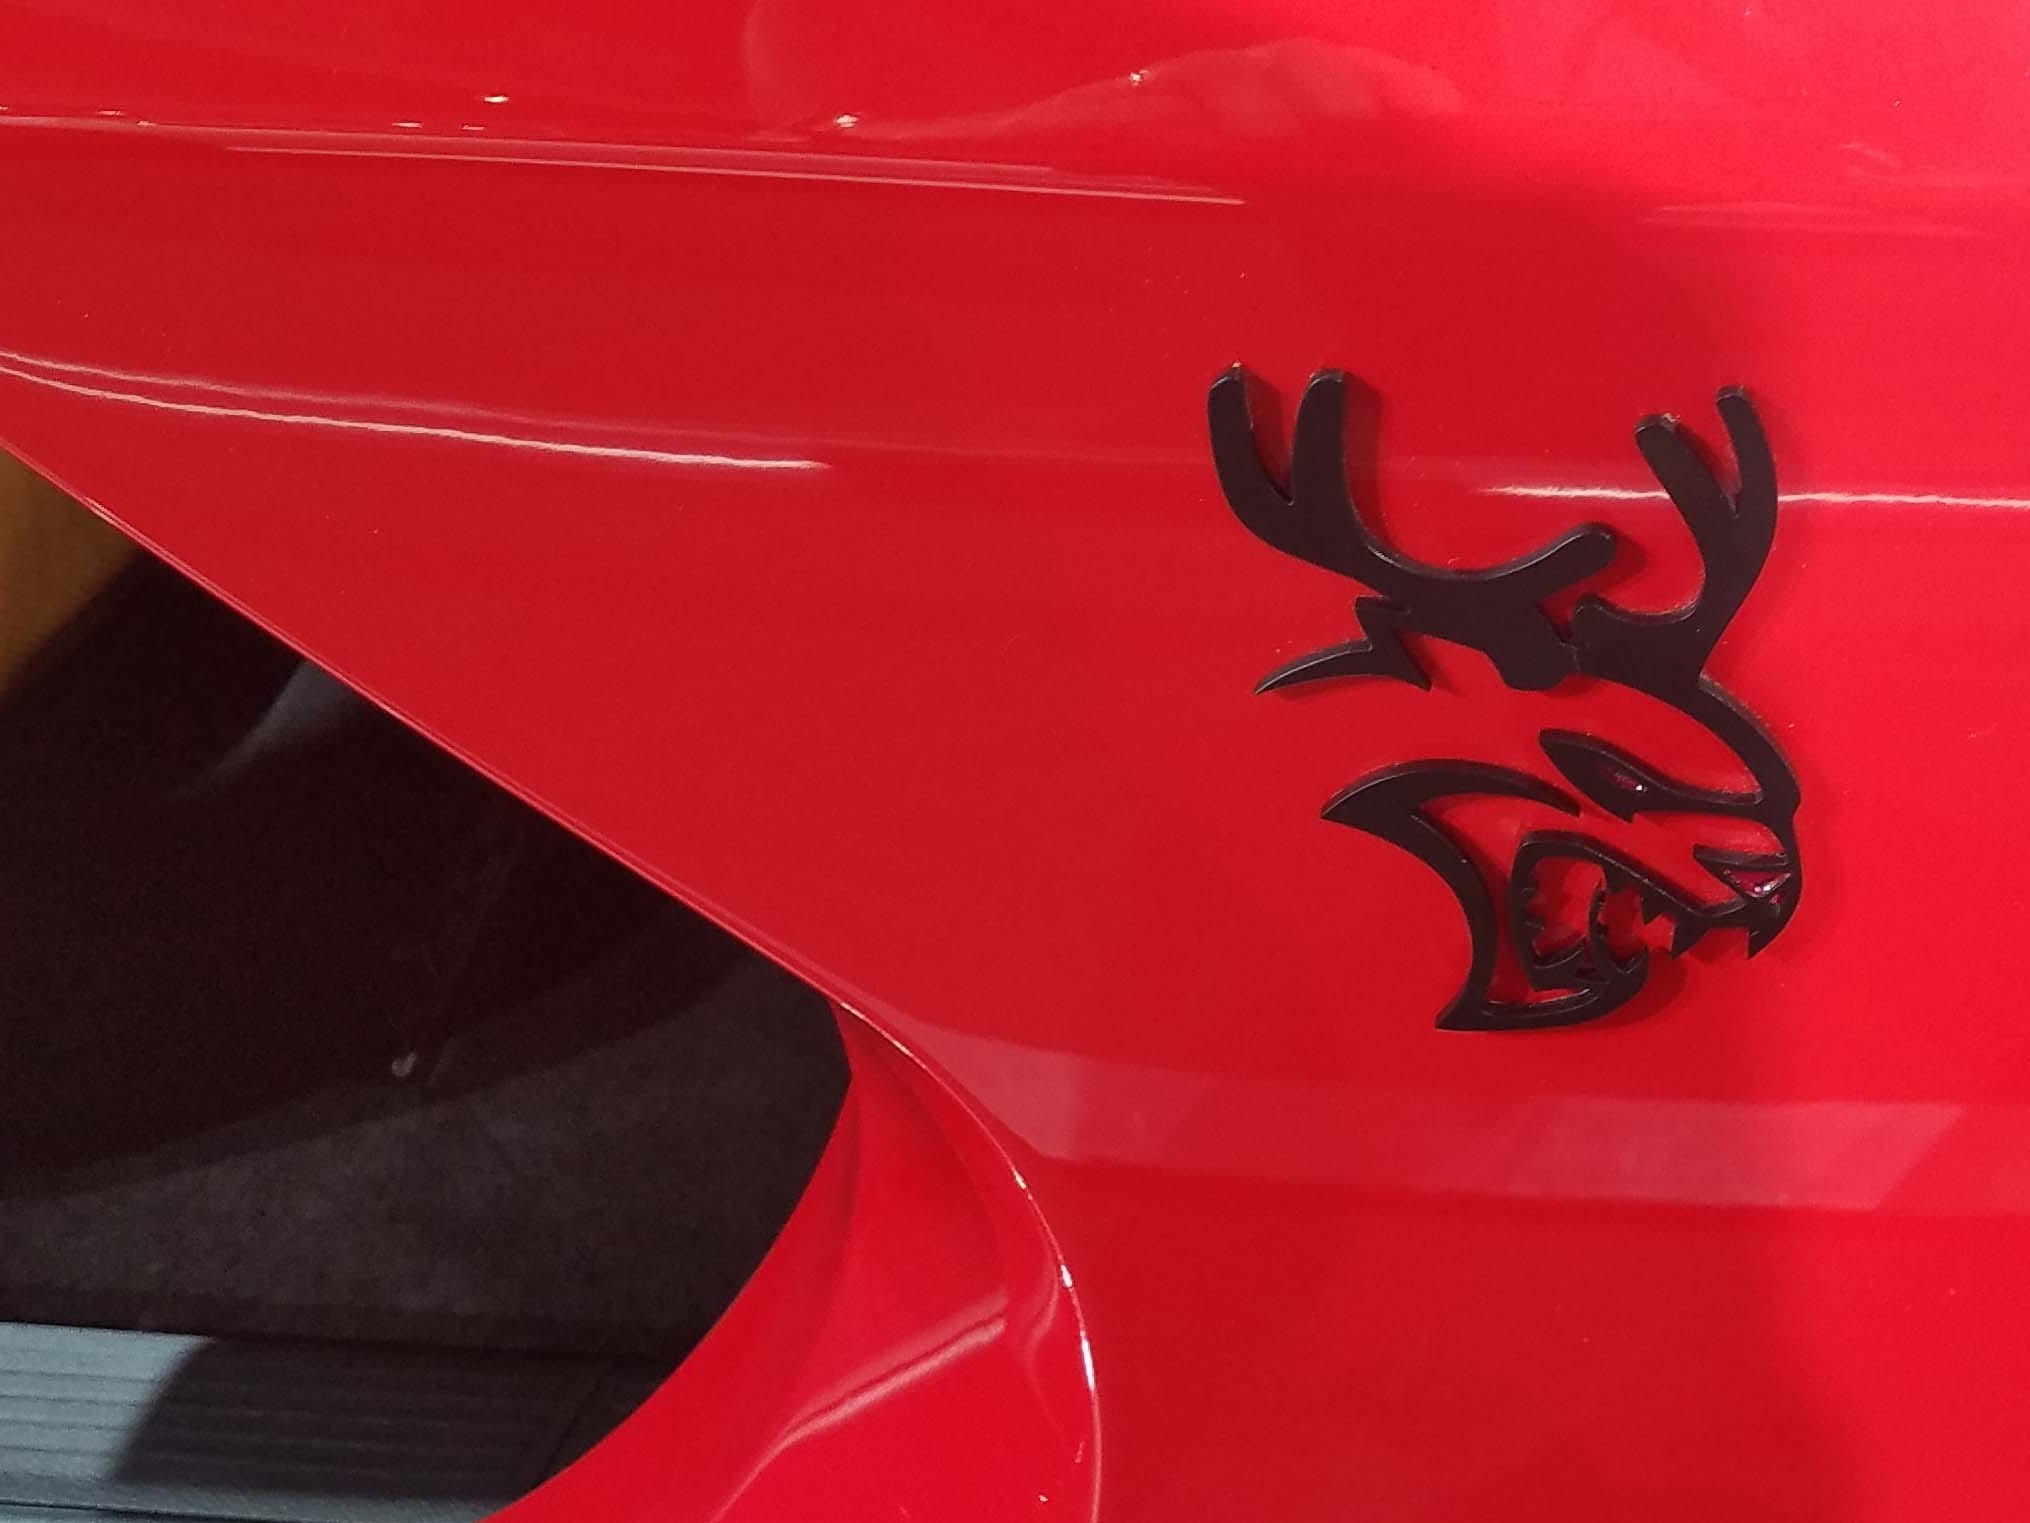 The Dodge Challenger Hellcat Redeye sleigh sports a Hellcat logo. . . with reindeer antlers.